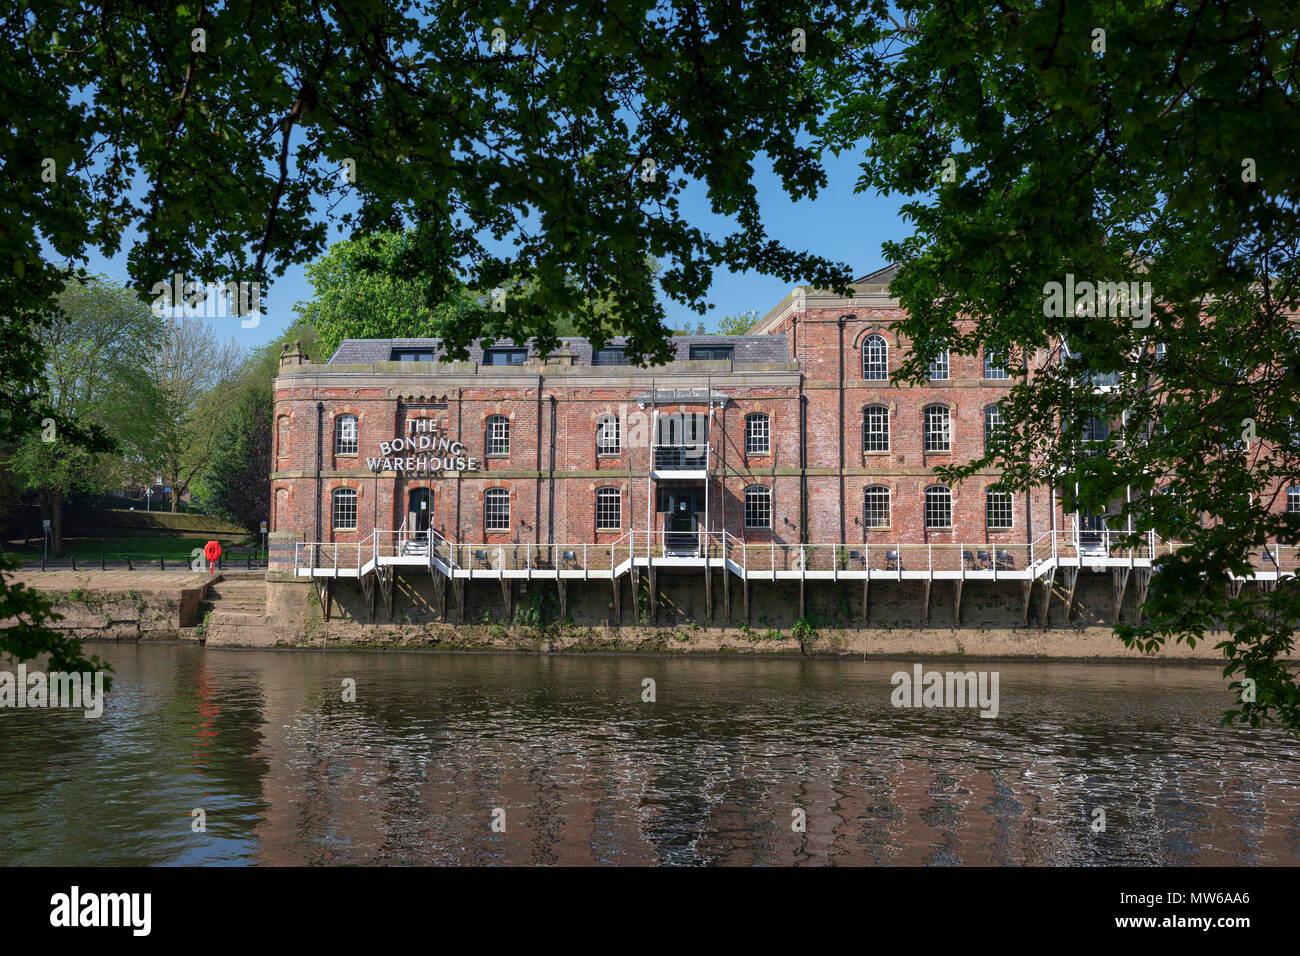 The Victorian Bonded Warehouse, transformed into luxury accommodation, fronting the River Ouse, York, UK - Stock Image